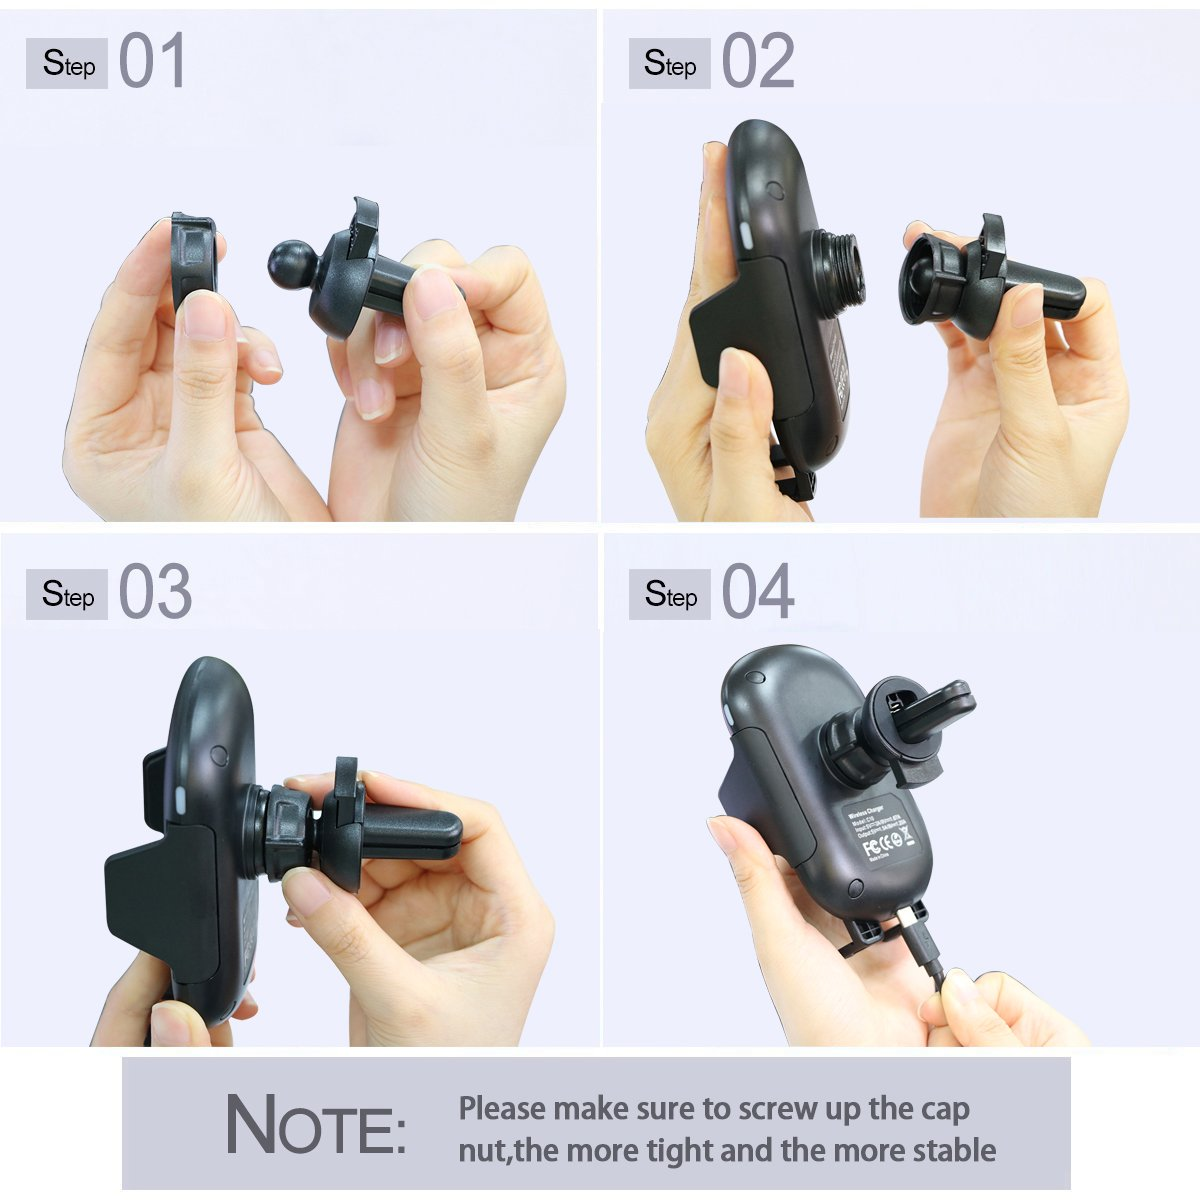 Automatic Induction Qi Fast Wireless Car Charger Stand Air Vent Phone Holder for iPhone X,8 Plus,8,Samsung Galaxy S9,S9 Plus,S8 Plus,S8,S7 Edge,S7,Note 8,Note 5 4351487330 HJSDtech Wireless Car Charger Mount